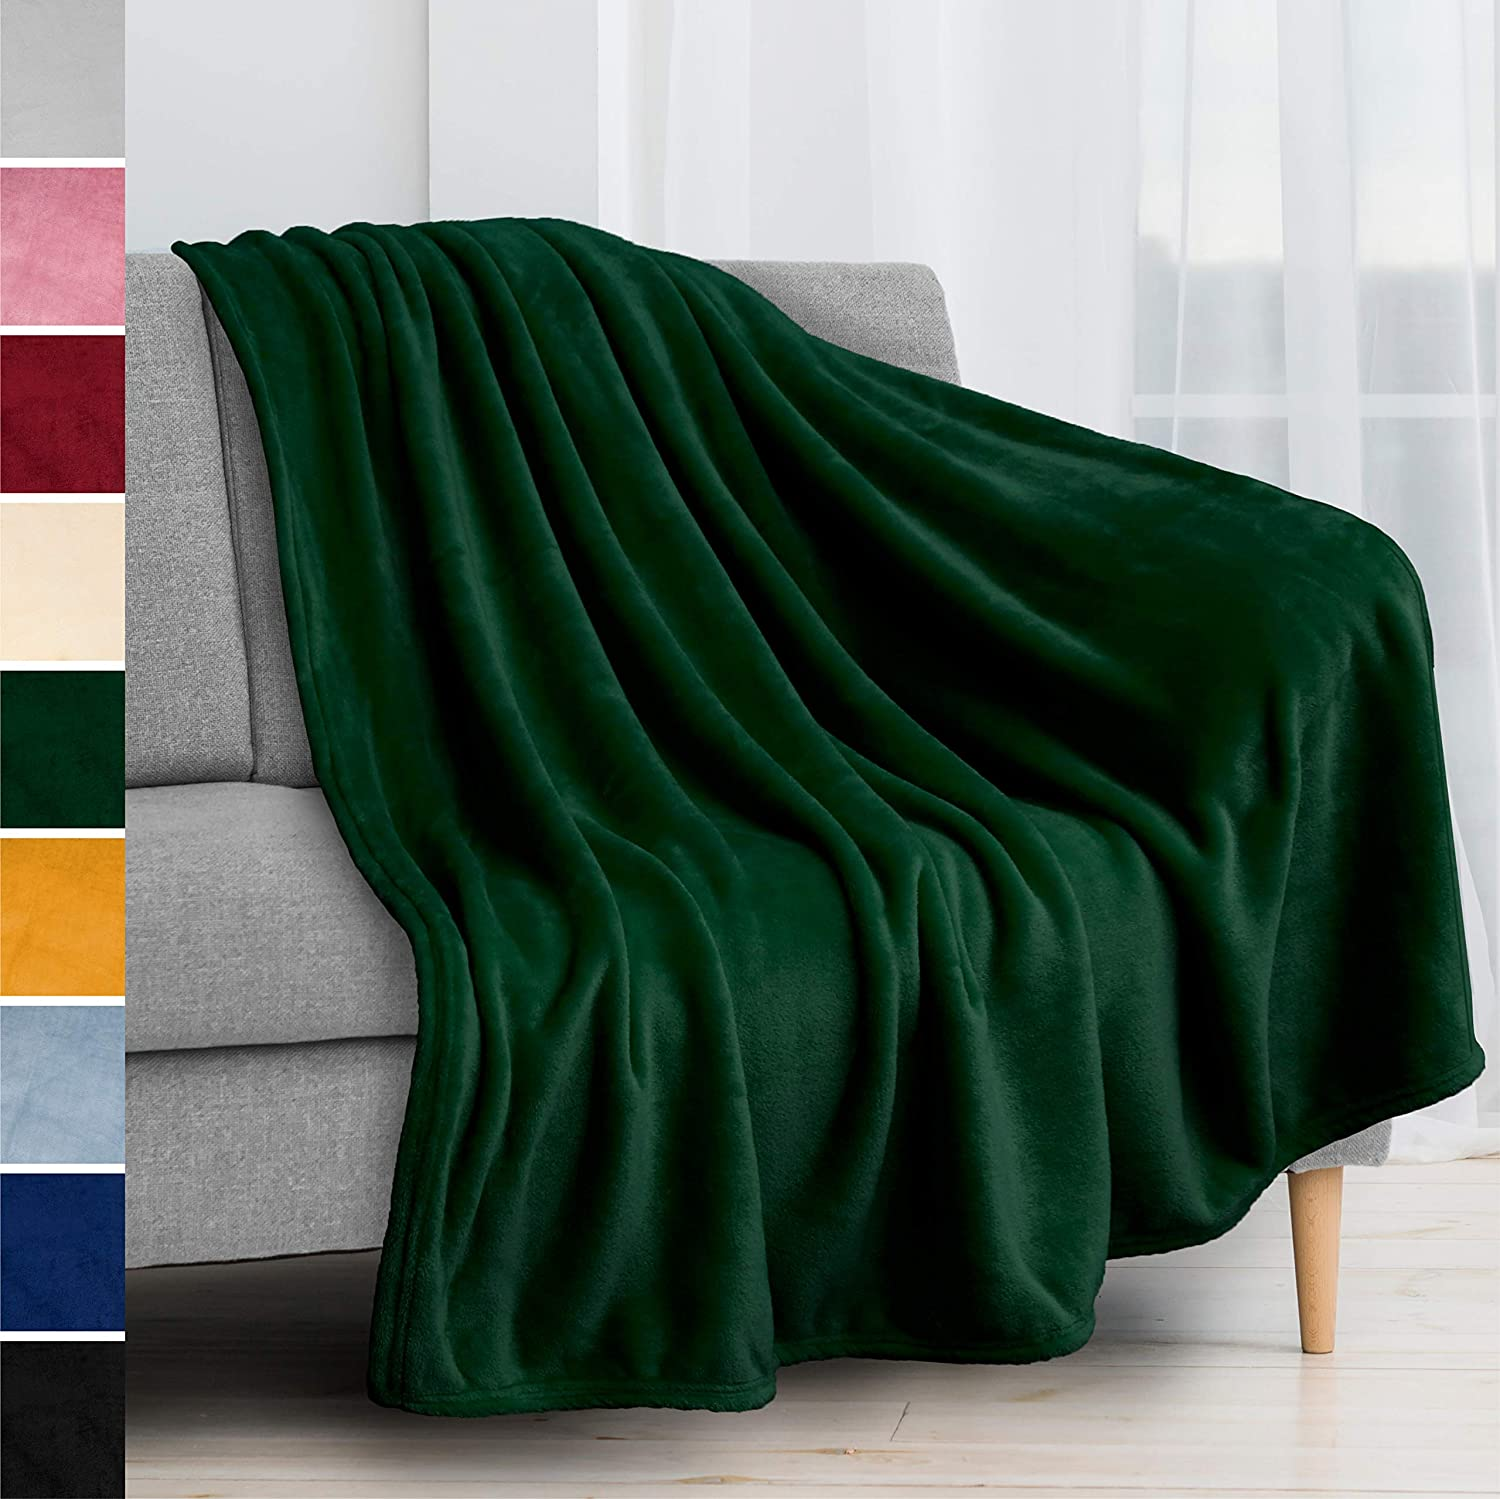 PAVILIA Fleece Blanket Throw | Super Soft, Plush, Luxury Flannel Throw | Lightweight Microfiber Blanket for Sofa Couch Bed (Emerald Green, 50x60 inches)